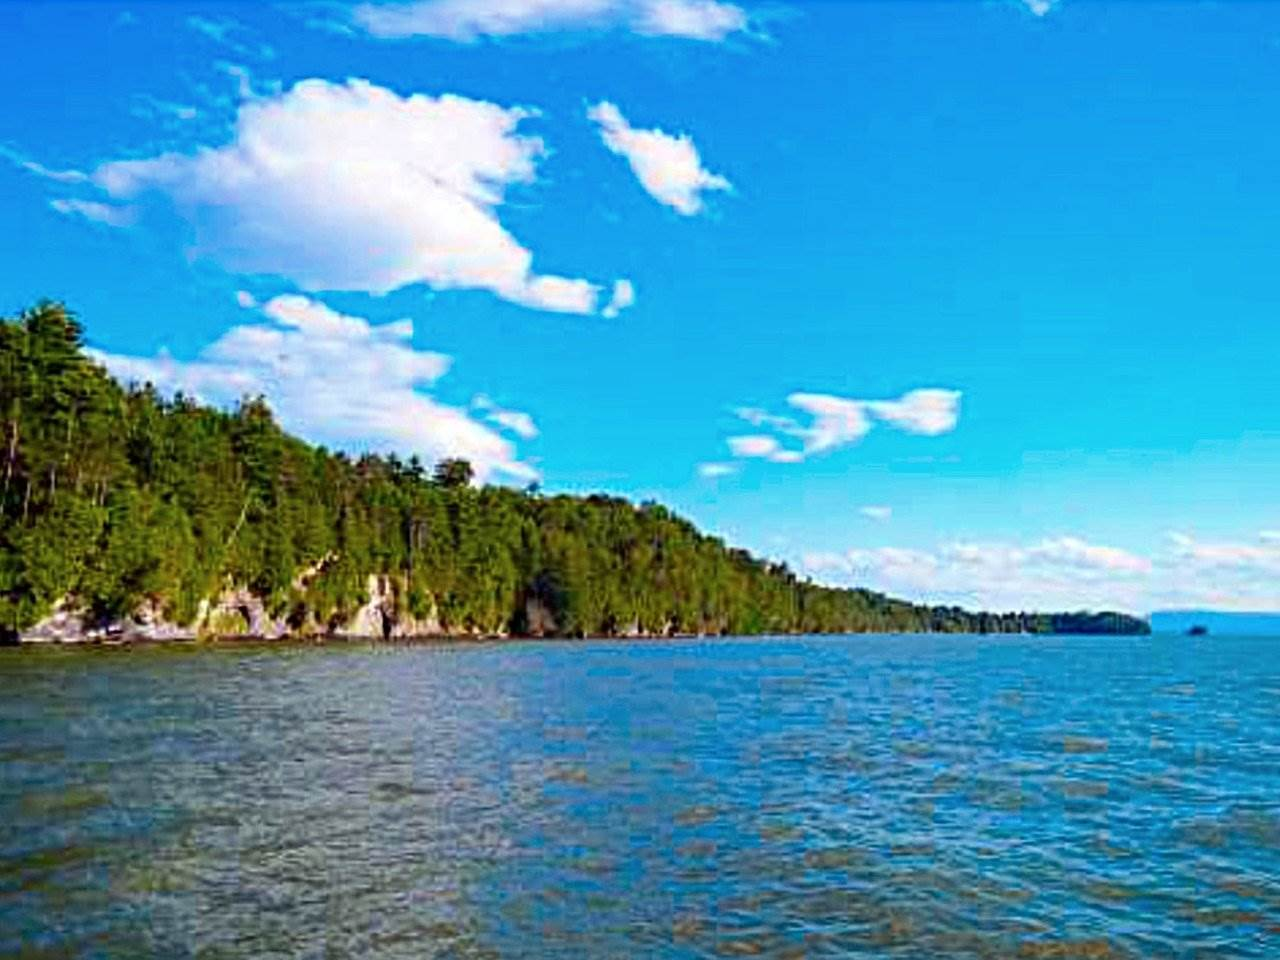 Have you ever dreamed of building the perfect home on Lake Champlain? This 24.8 acre parcel of land is just what you're looking for. Preliminary septic work shows 4+ bedroom possible. Over 800 feet of Lake Champlain shoreline on Button Bay. Stunning views that WOW with a feeling of peace as you experience the sun setting over the Adirondacks. Exploring this land will present mixed, mature hardwoods, abundant wildlife and breathtaking scenery! Stop dreaming and start living, because...there's no place like home!